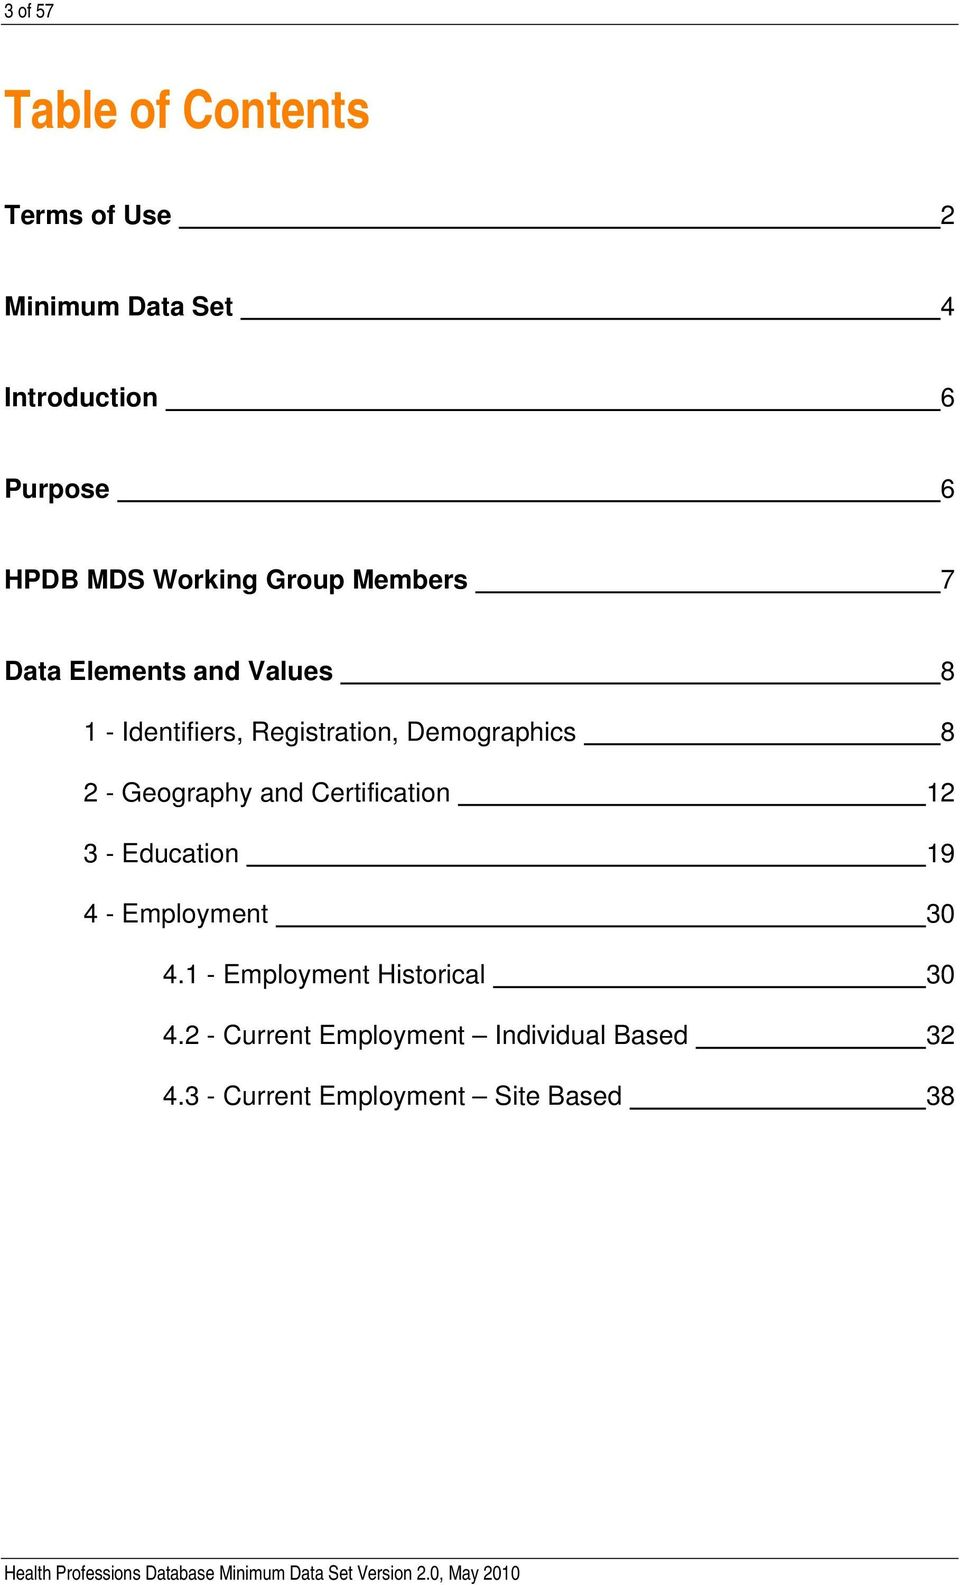 Demographics 8 2 - Geography and Certification 12 3 - Education 19 4 - Employment 30 4.